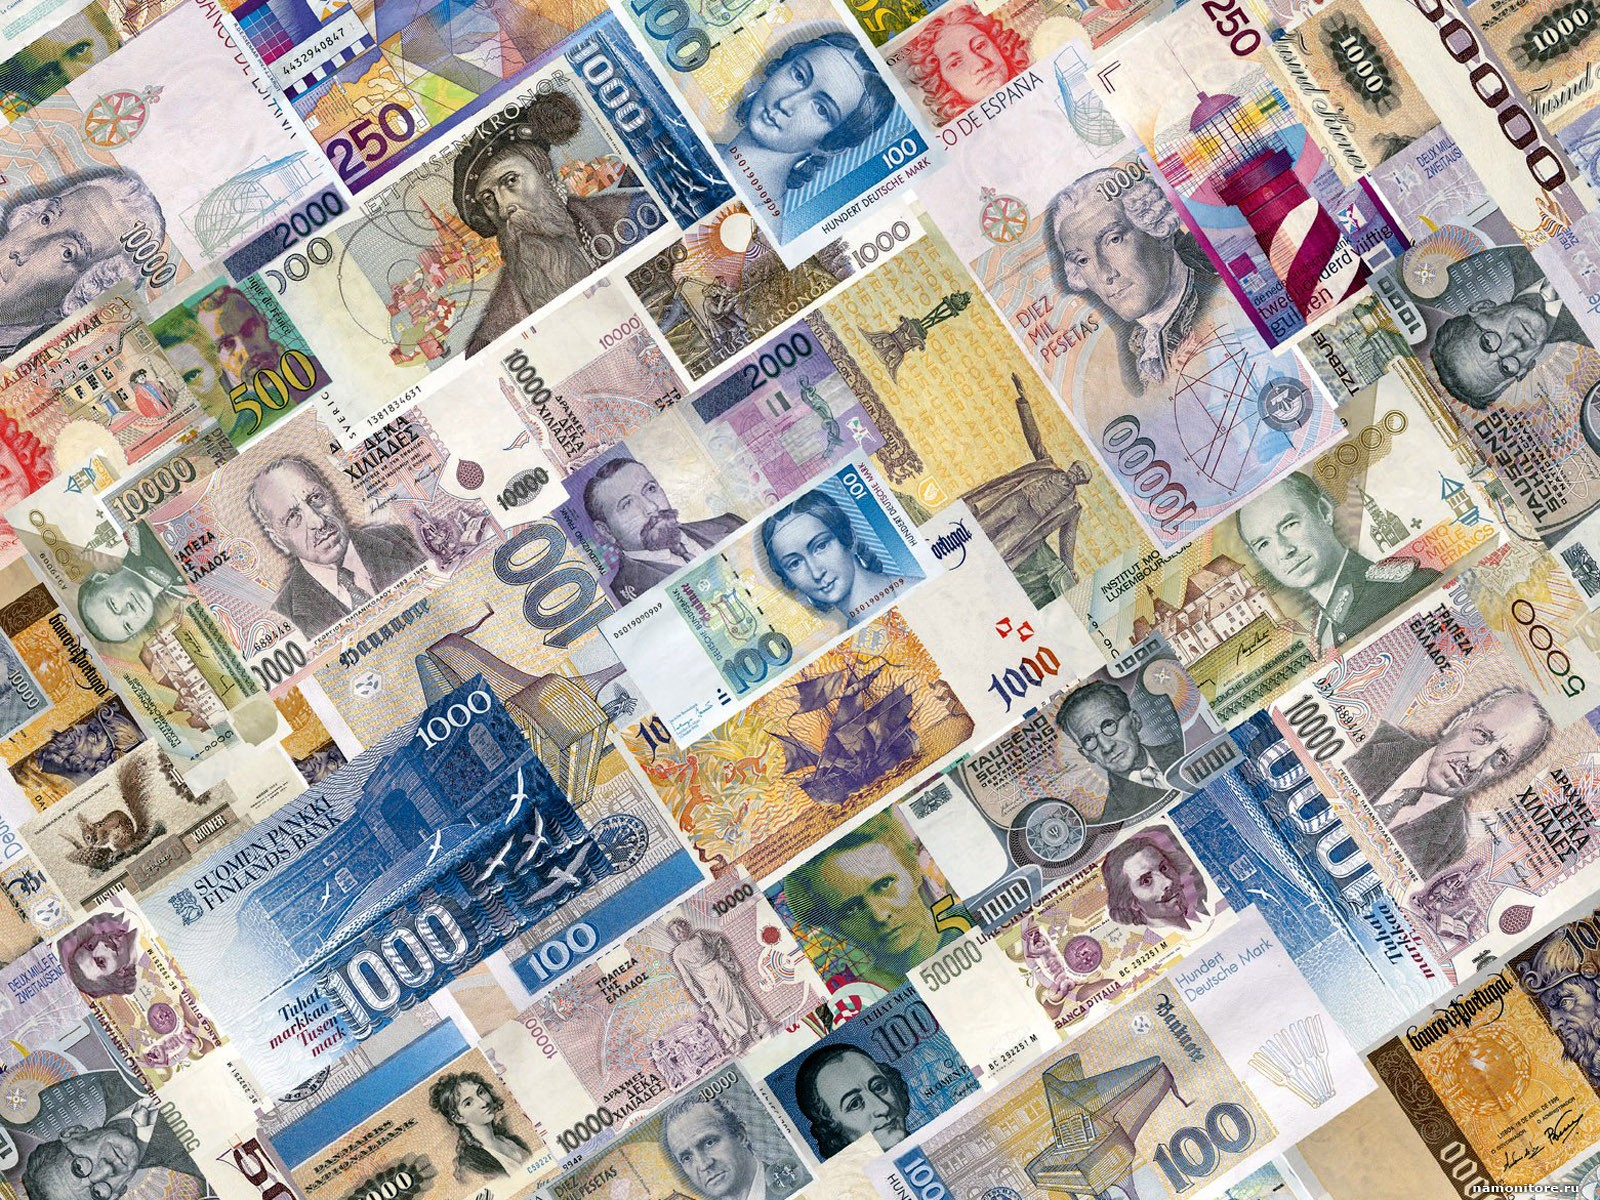 Monetary units of the different countries, clipart, money.